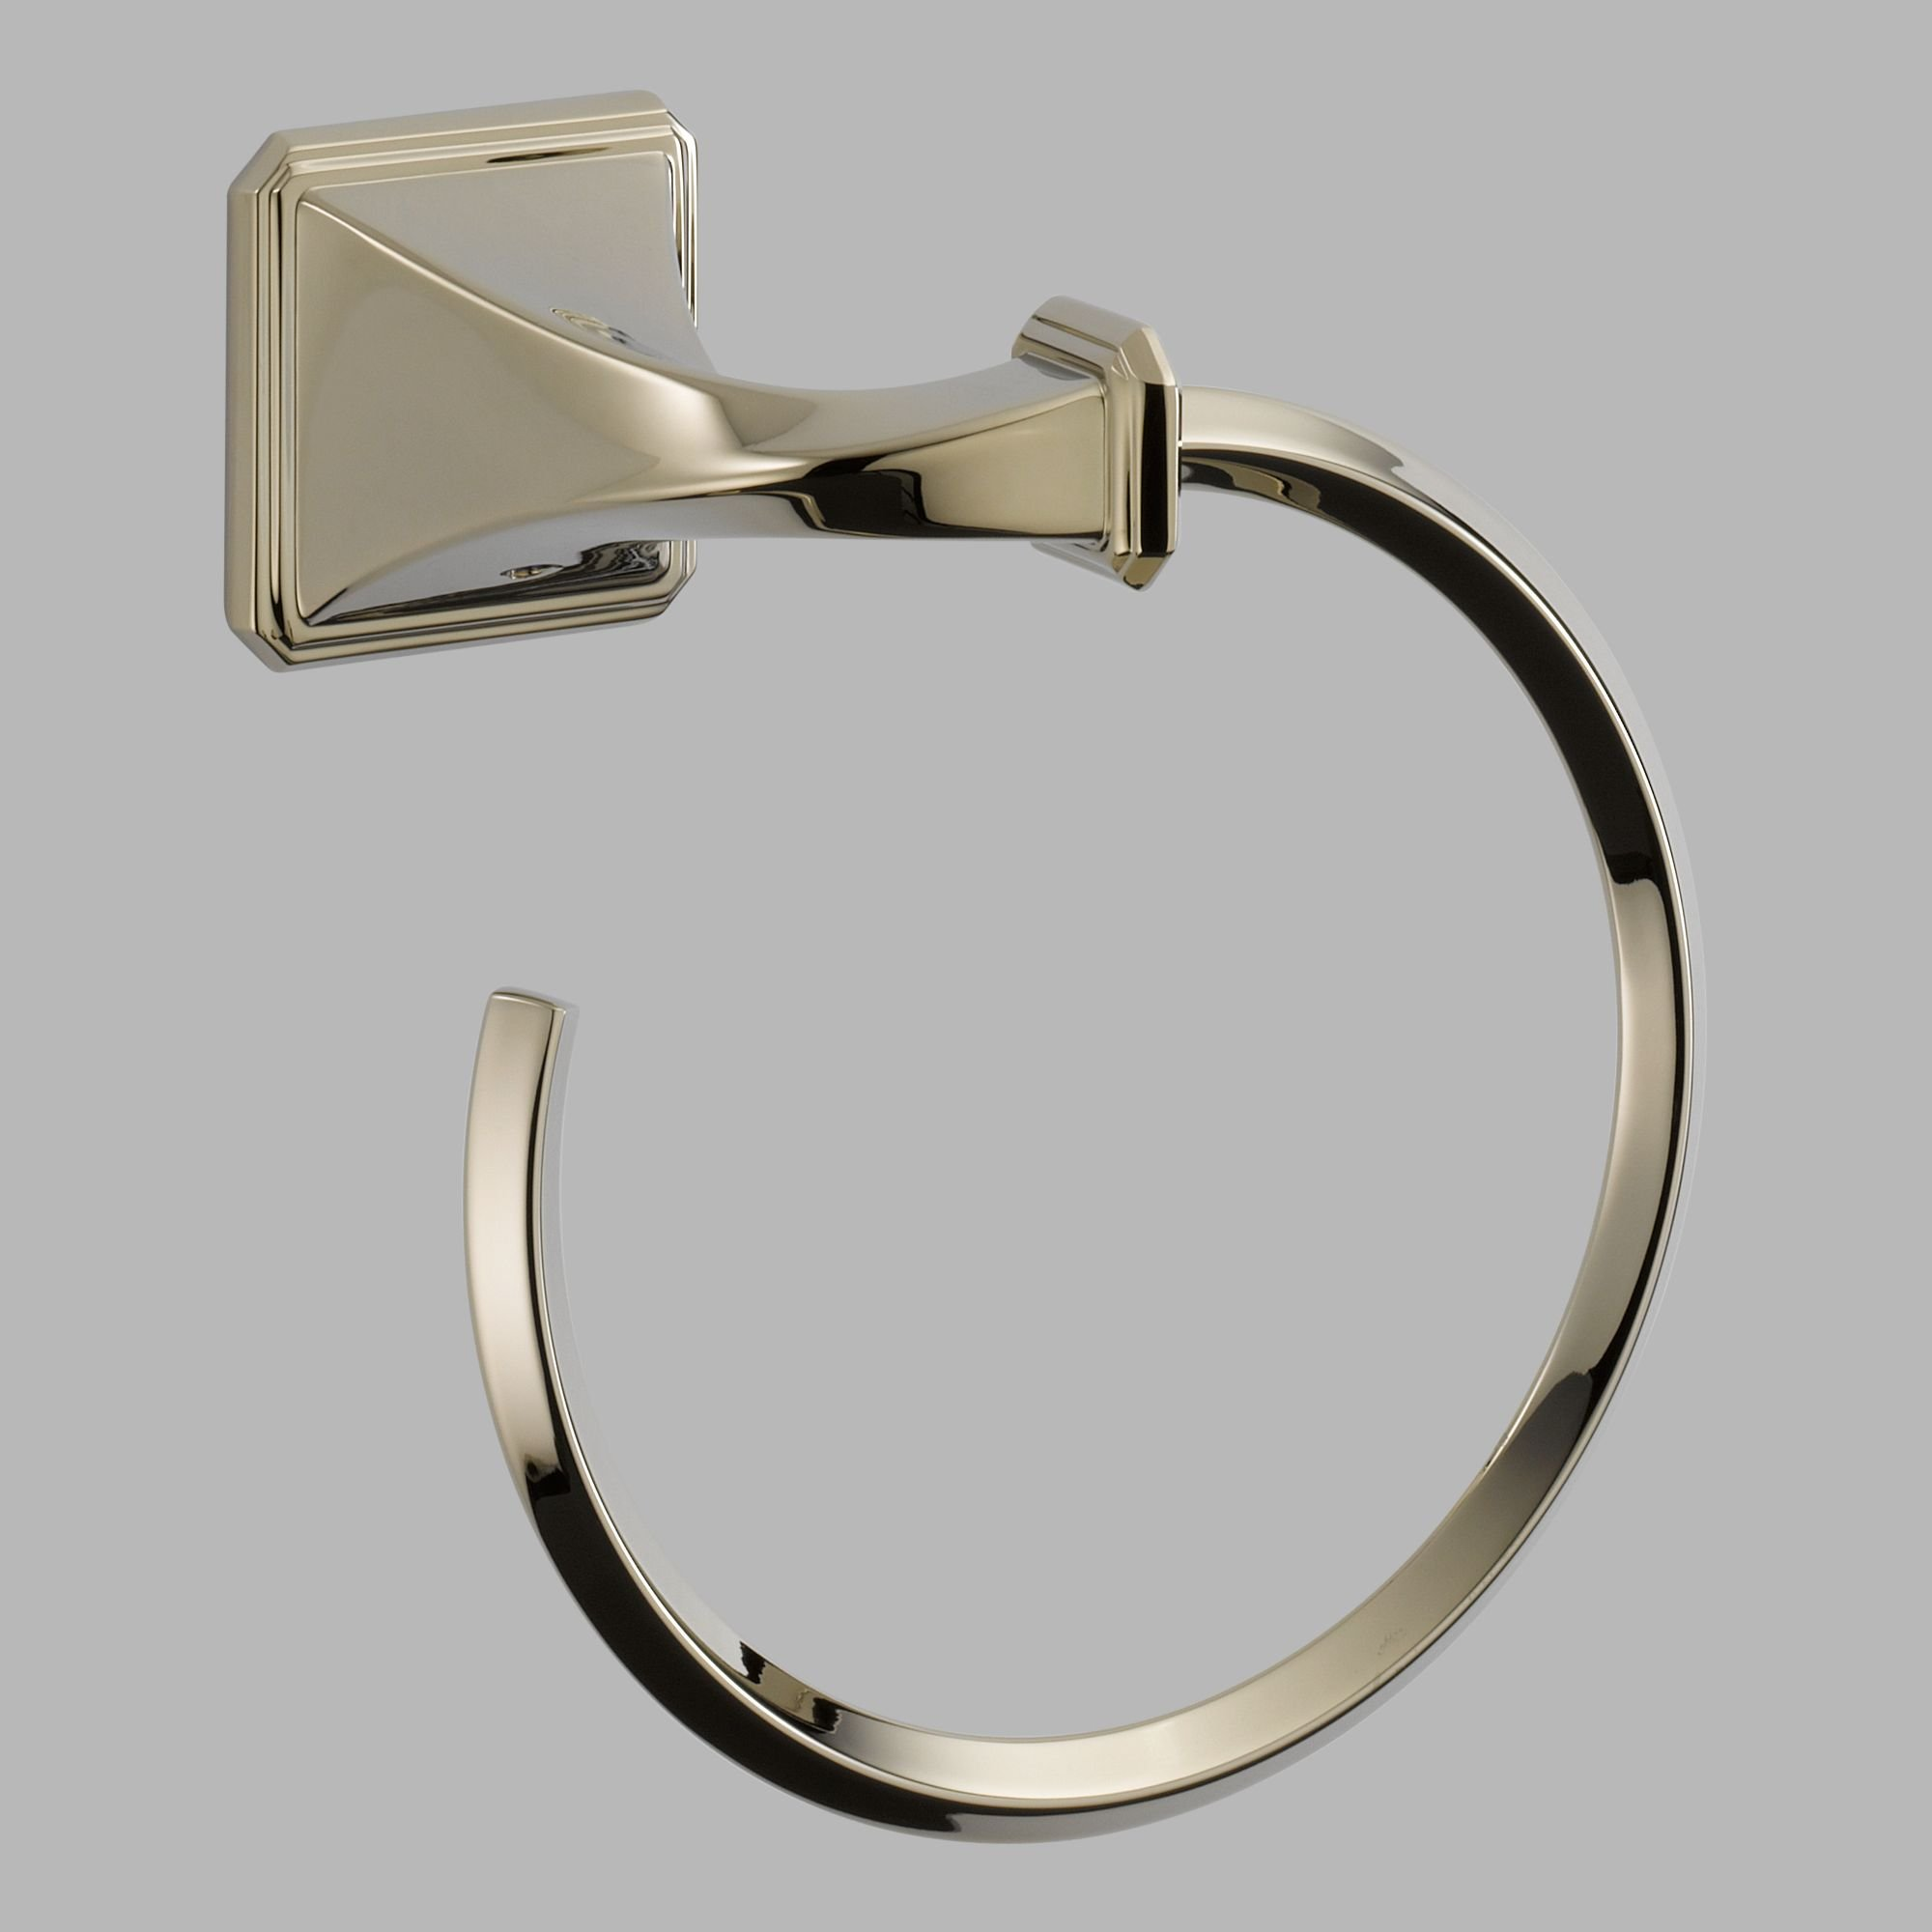 Brizo 694630-PN Virage Polished Nickel Towel Ring